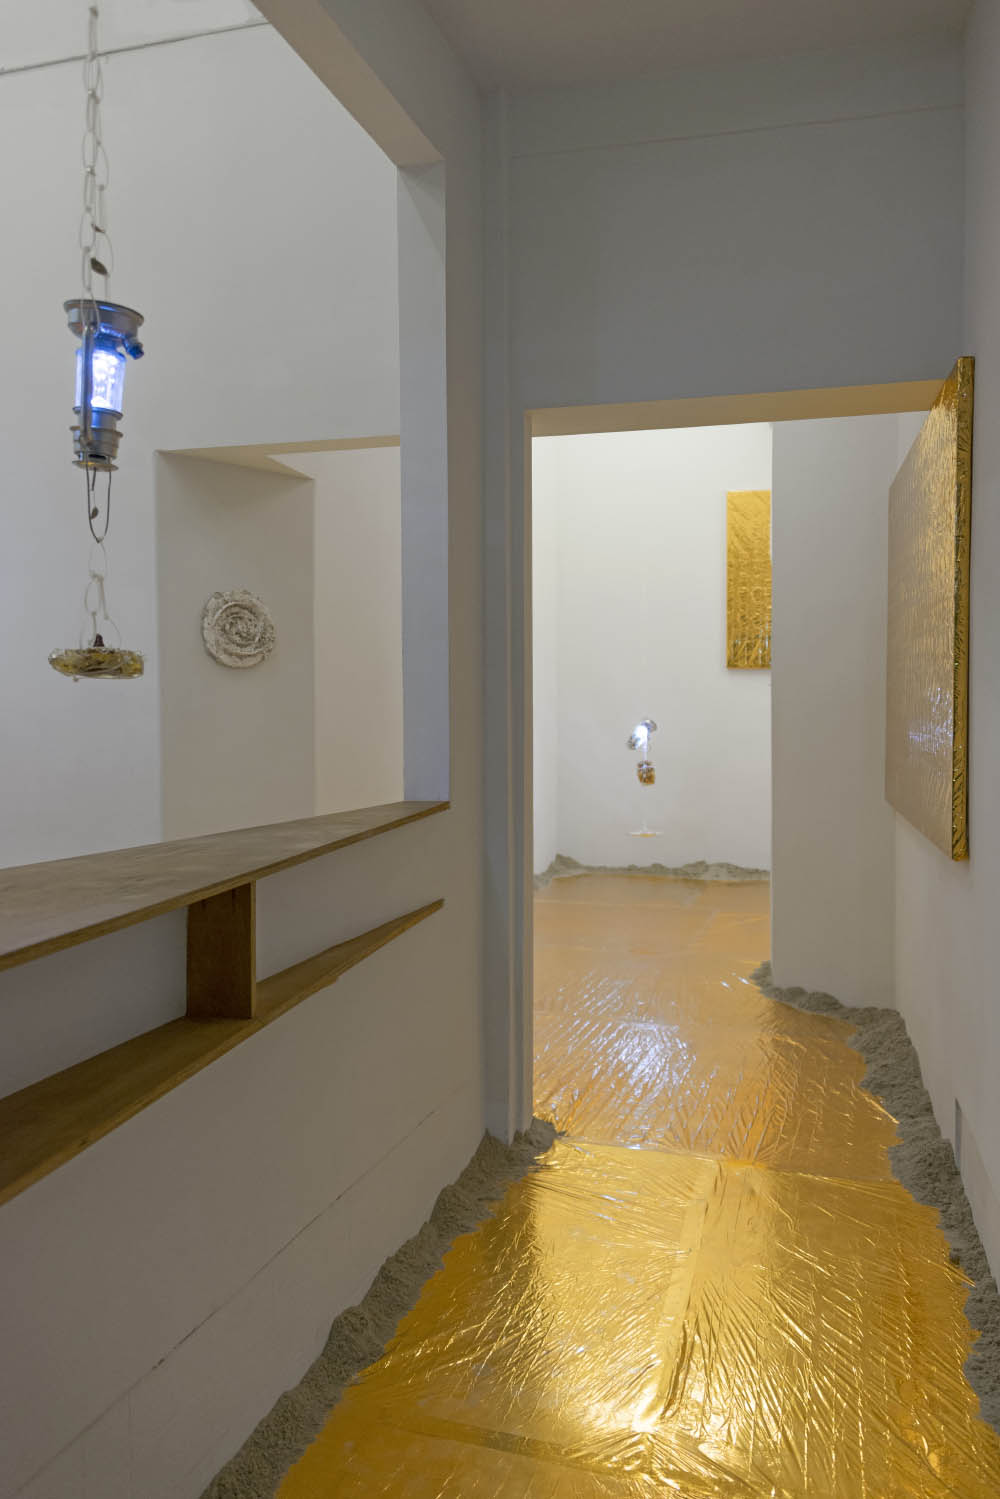 Diet Sonata 2015 LED lanterns, resin, freeze dried food, plaster, survival blankets, sand Dimensions variable Installation view at Smart Objects, Los Angeles, USA